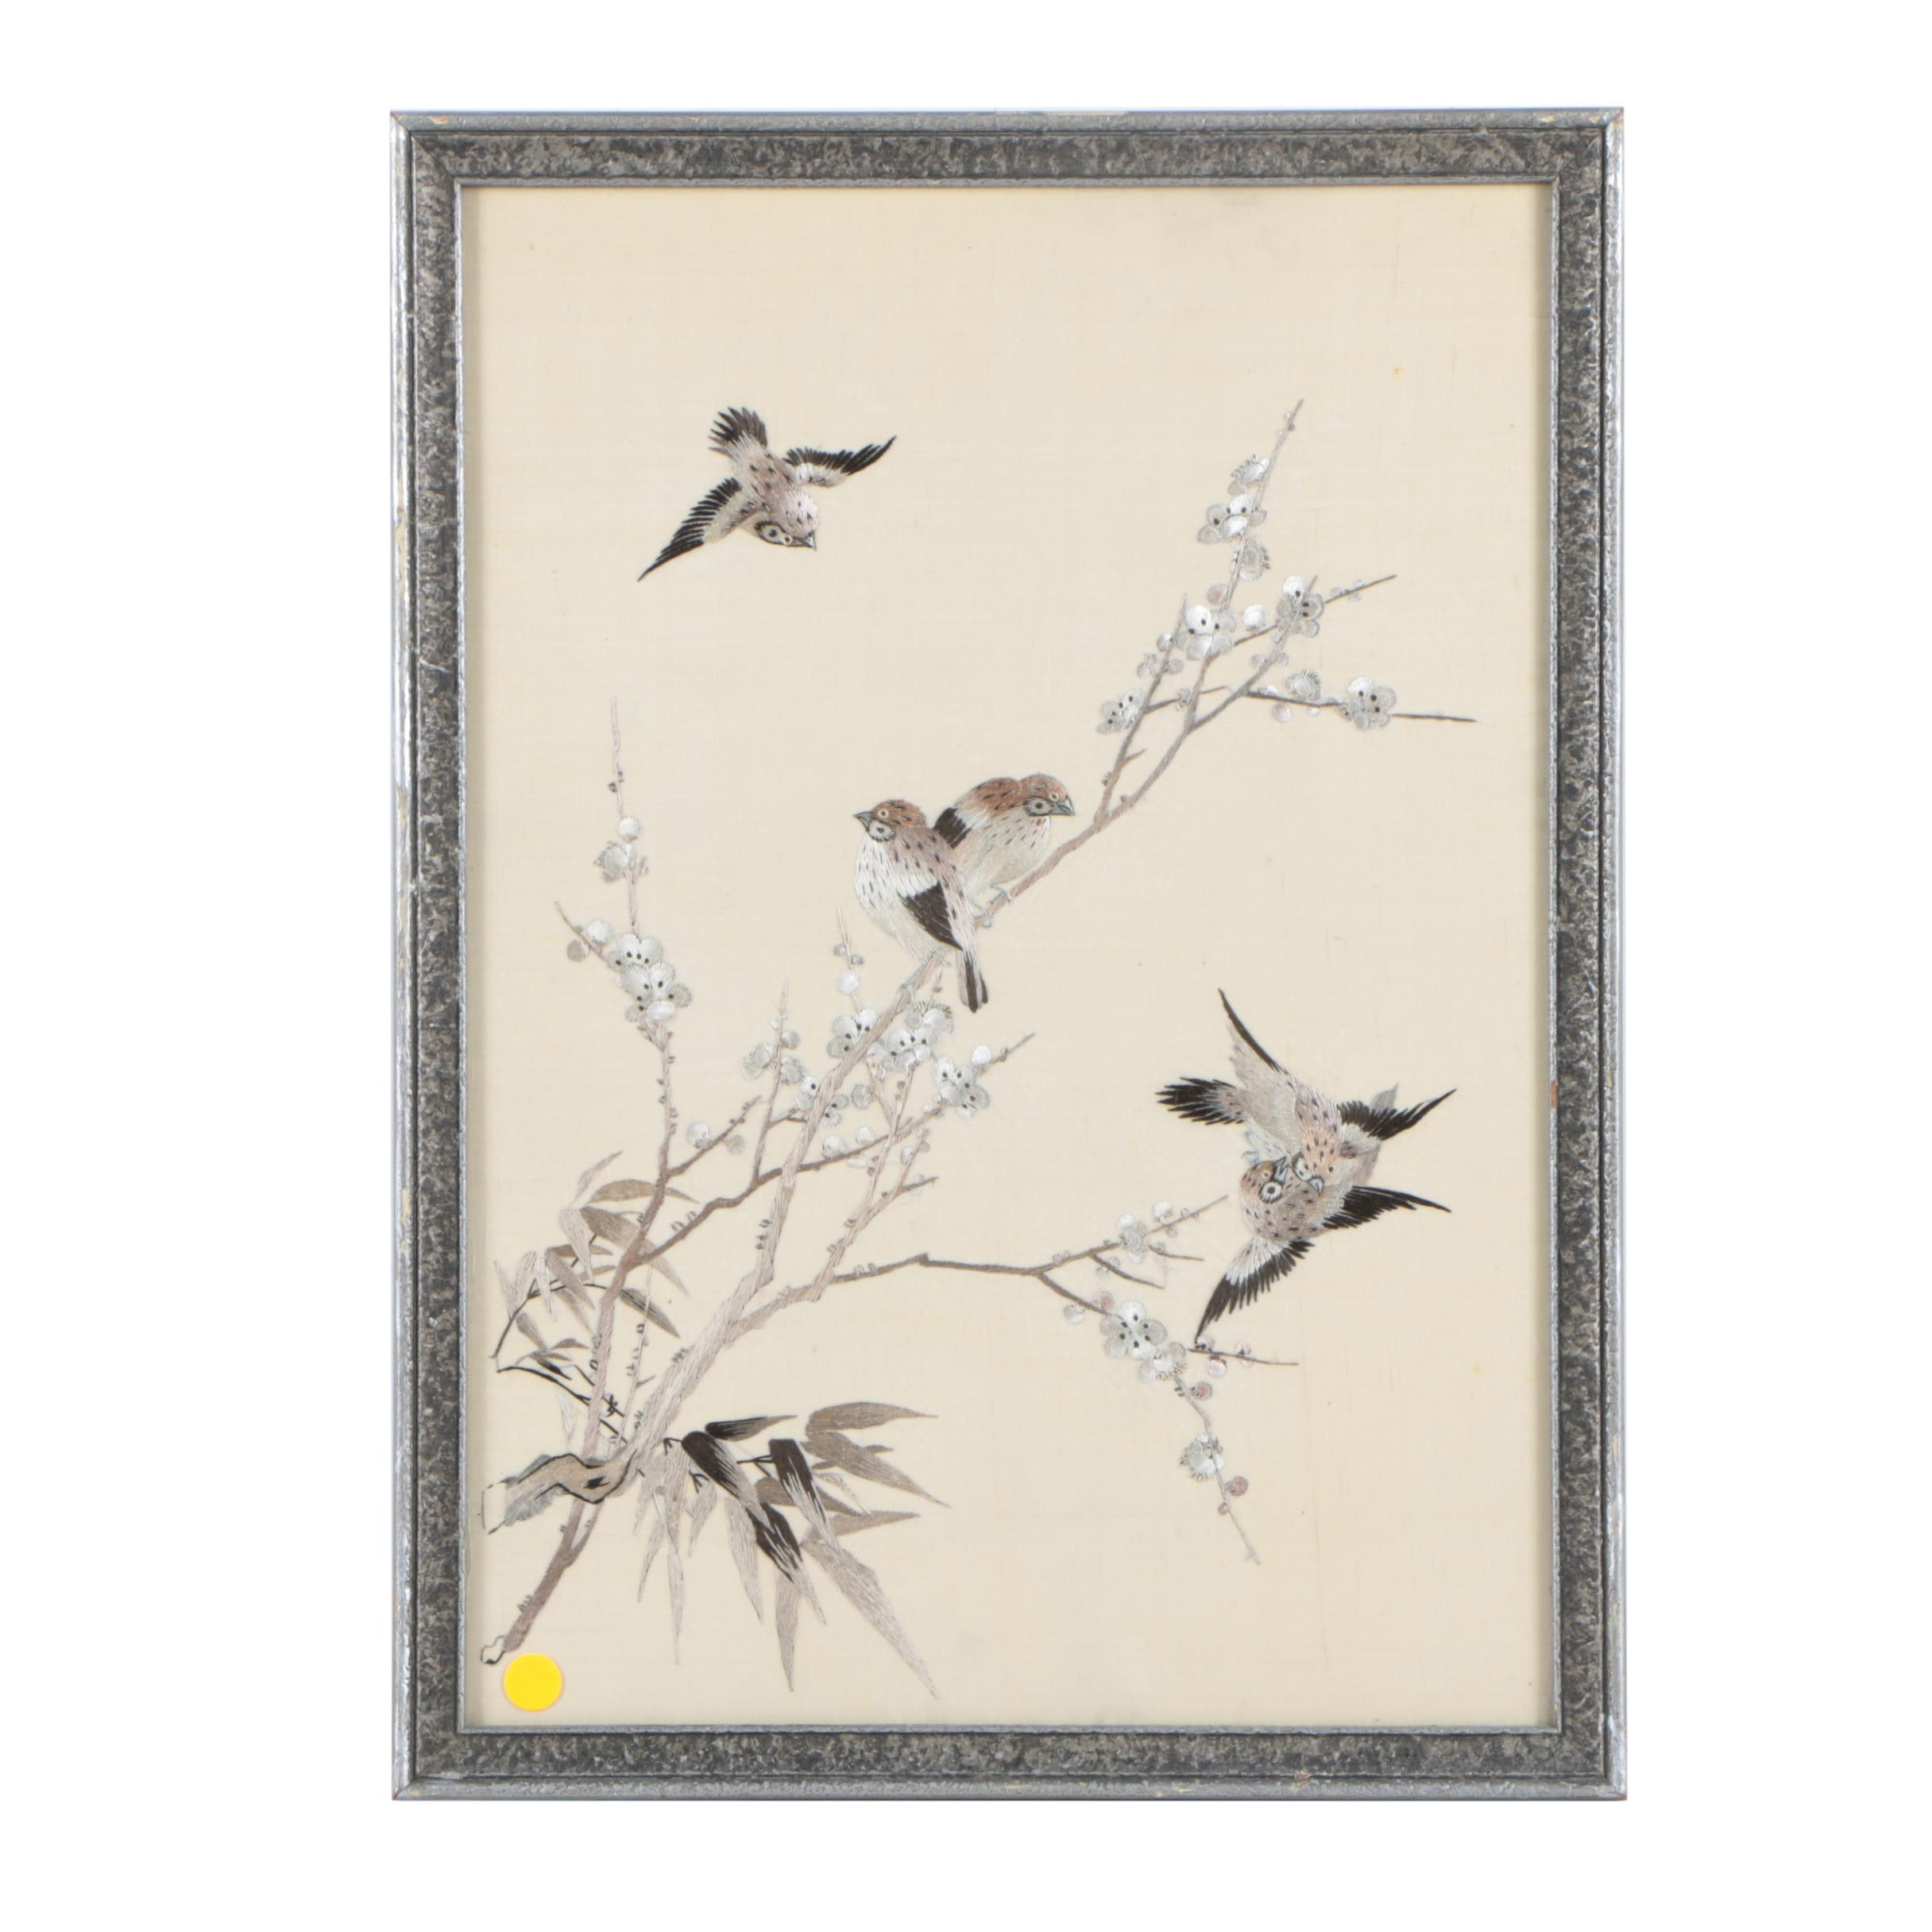 Embroidery of Birds and Blooms